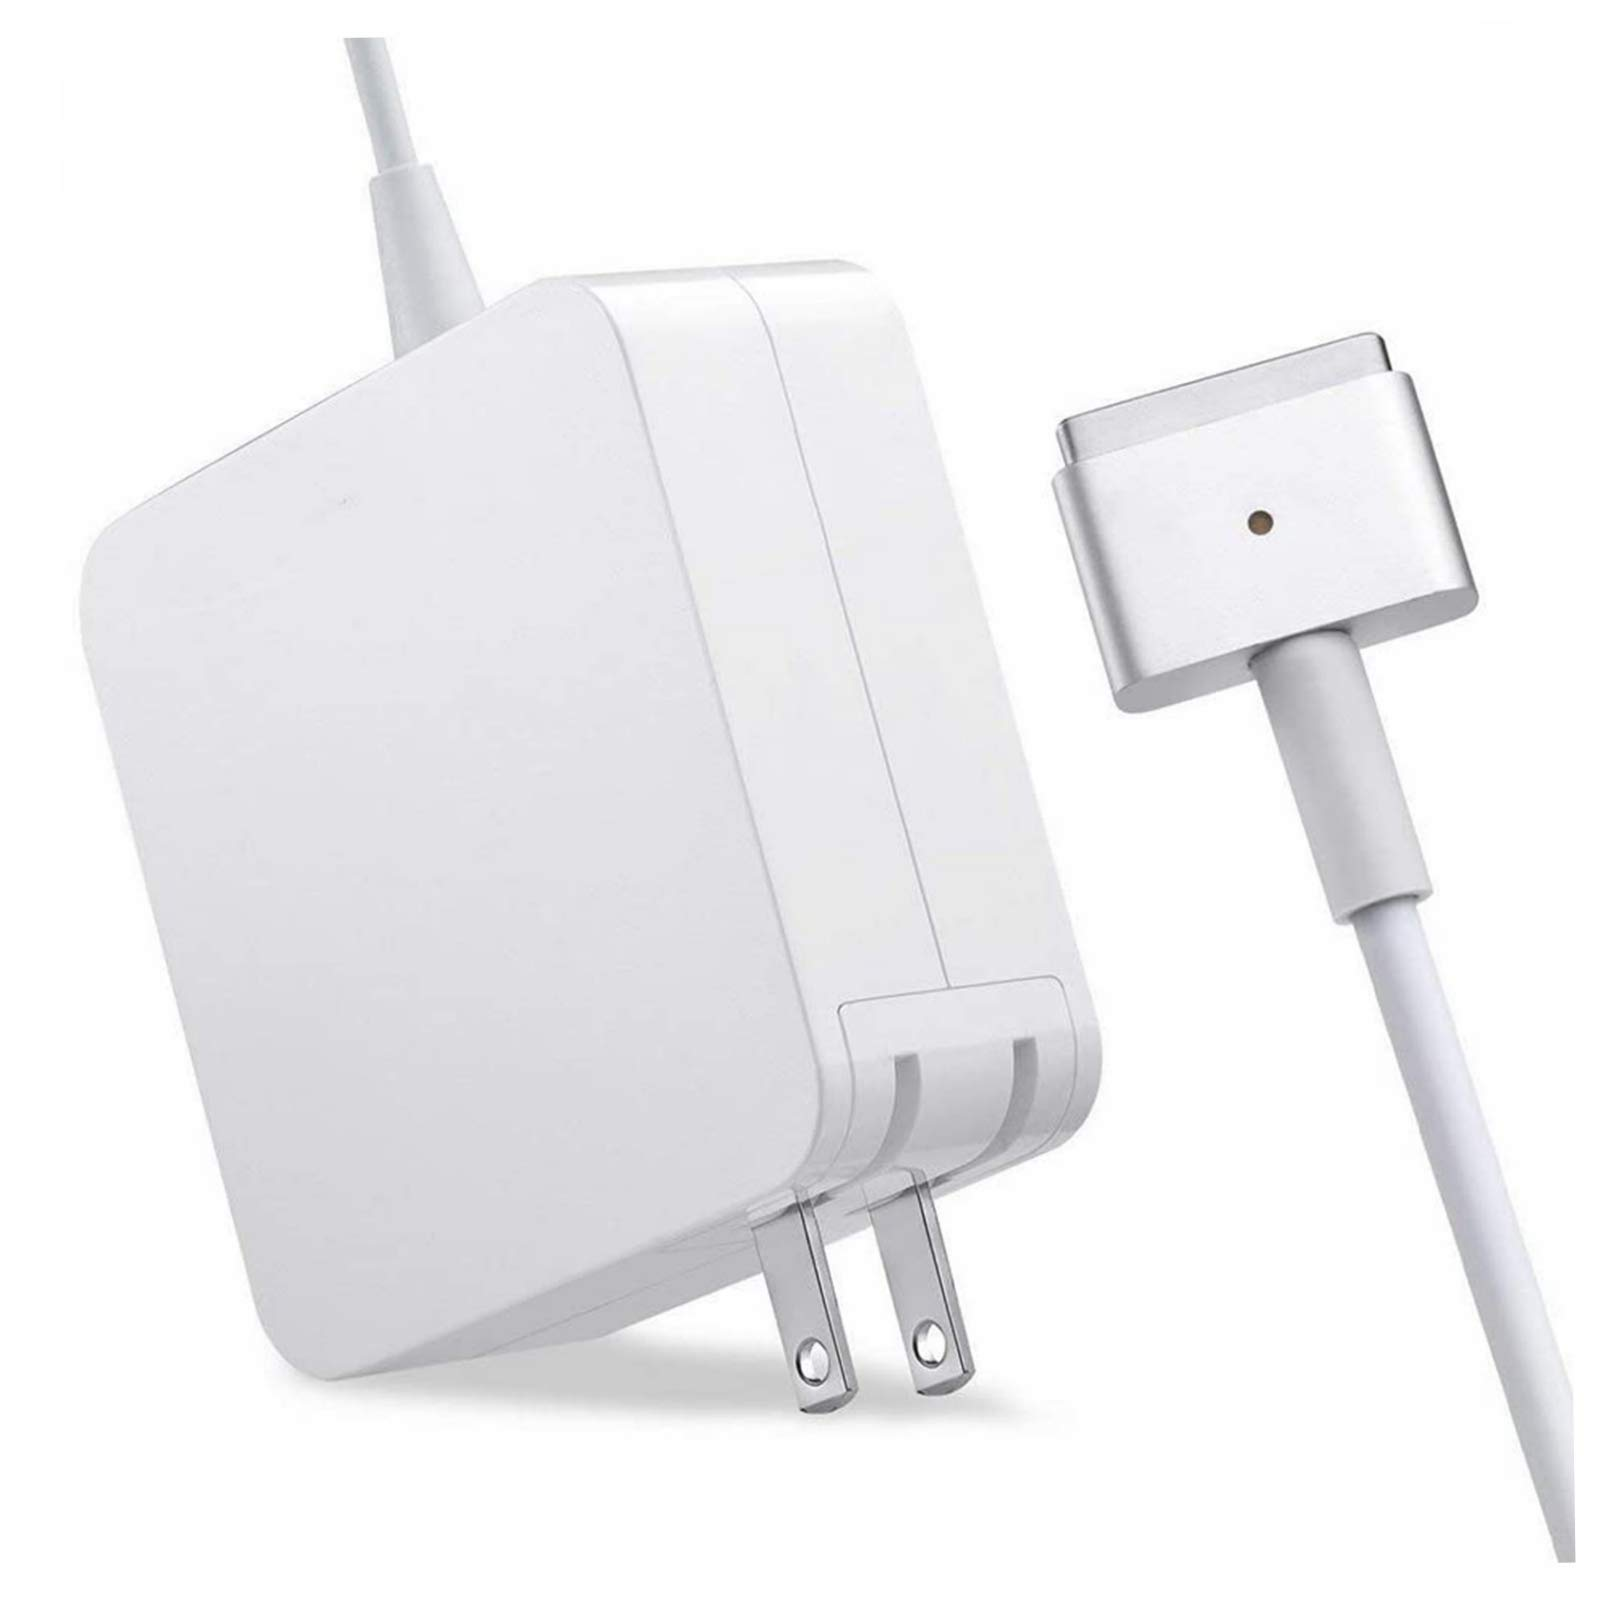 Mac Book Air Charger, 45W Magsafe 2 Power Adapter with Magnetically T-Tip, Compatible with Mac Book Air 11/13 inch (After Mid 2012)